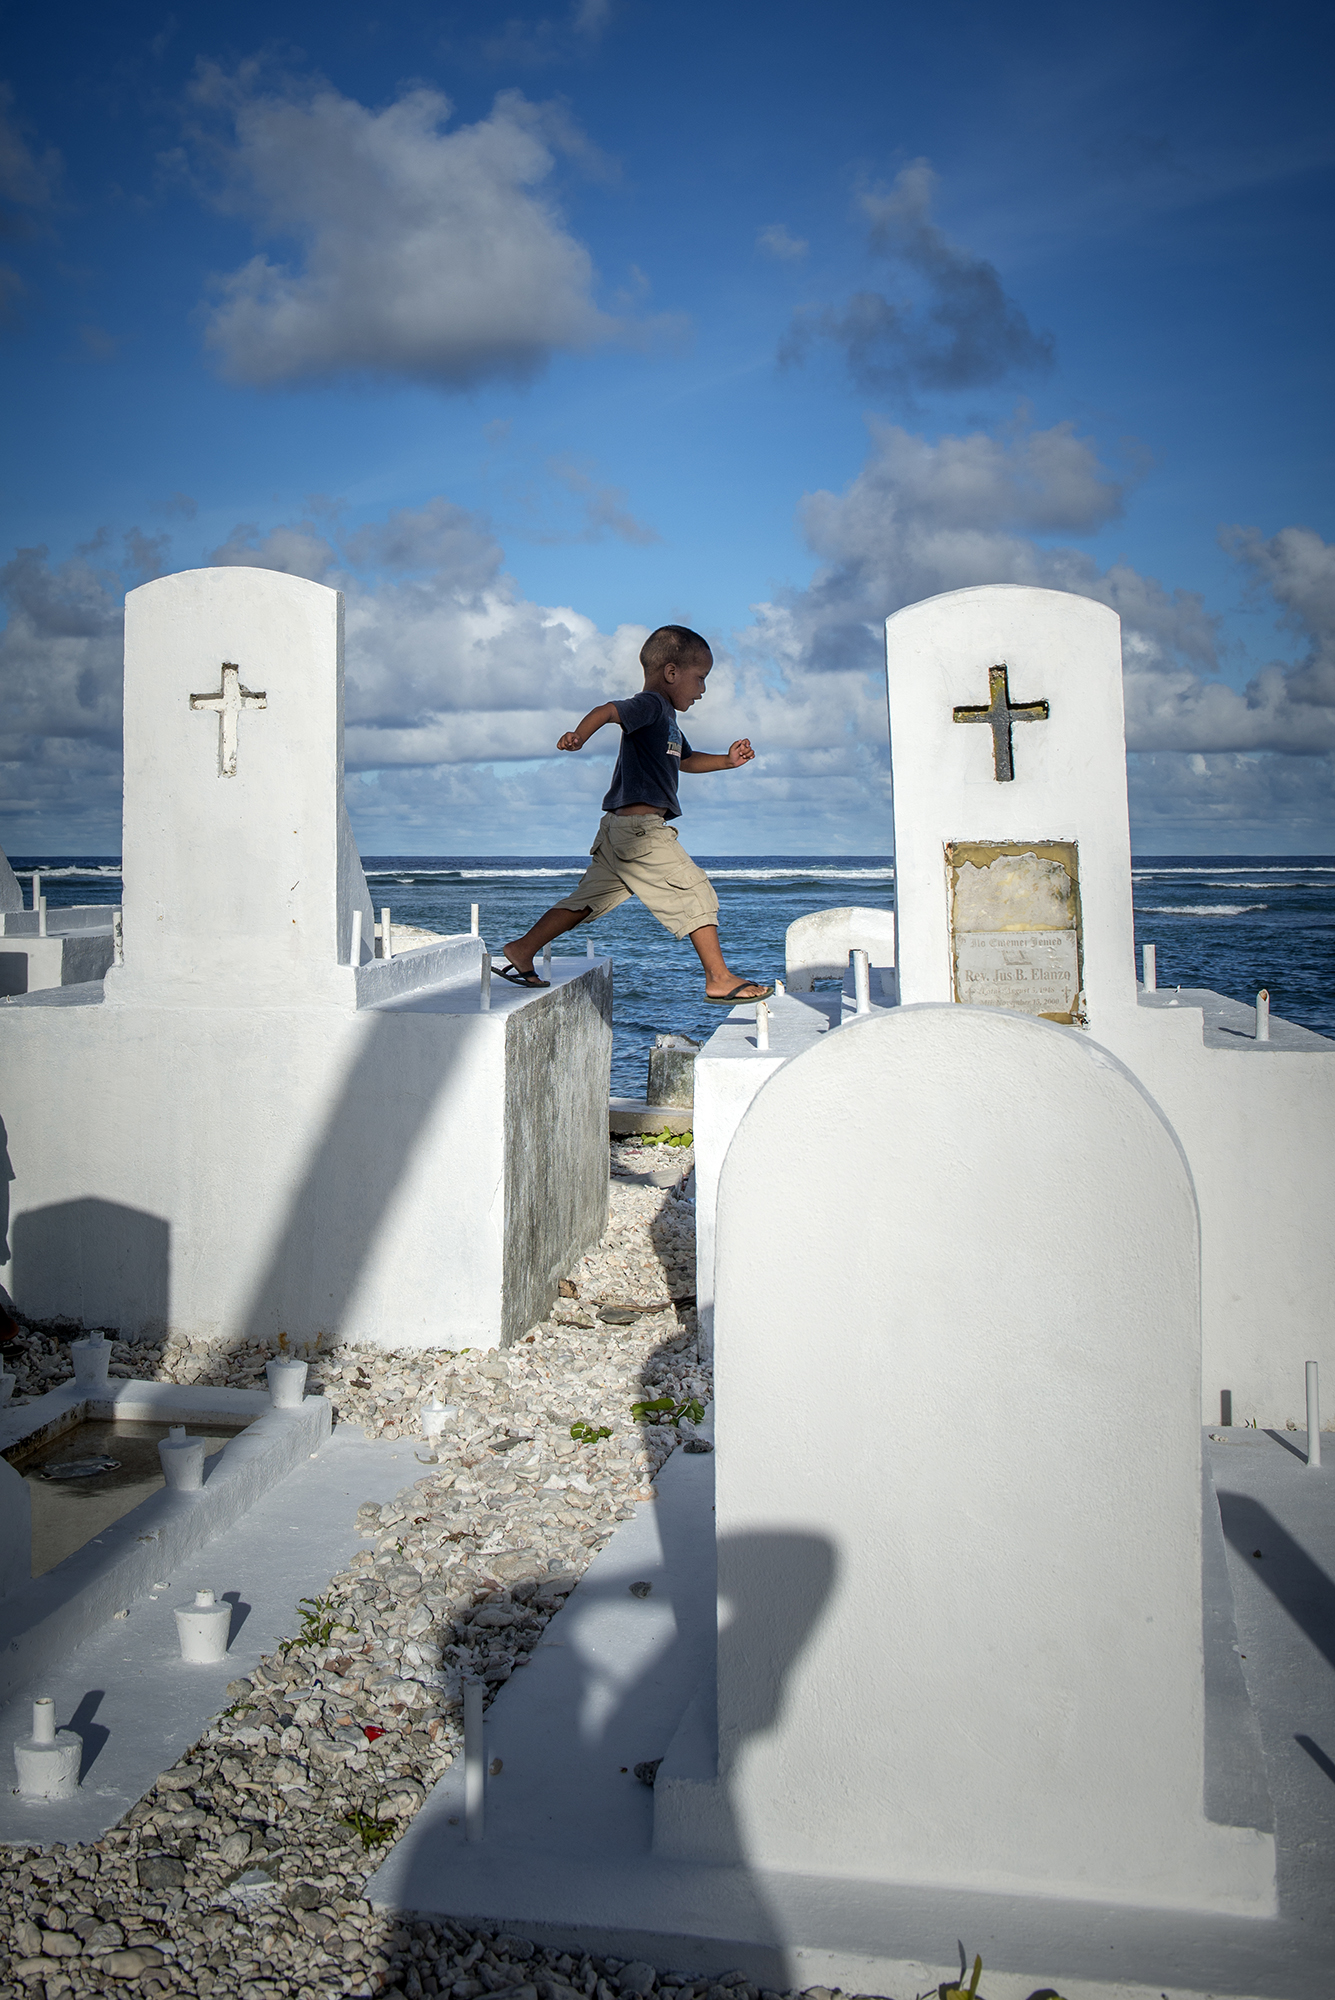 <p>A child plays in a cemetery that is gradually crumbling into the ocean as climate change raises the sea level. Photo by Mark Edward Harris.</p>